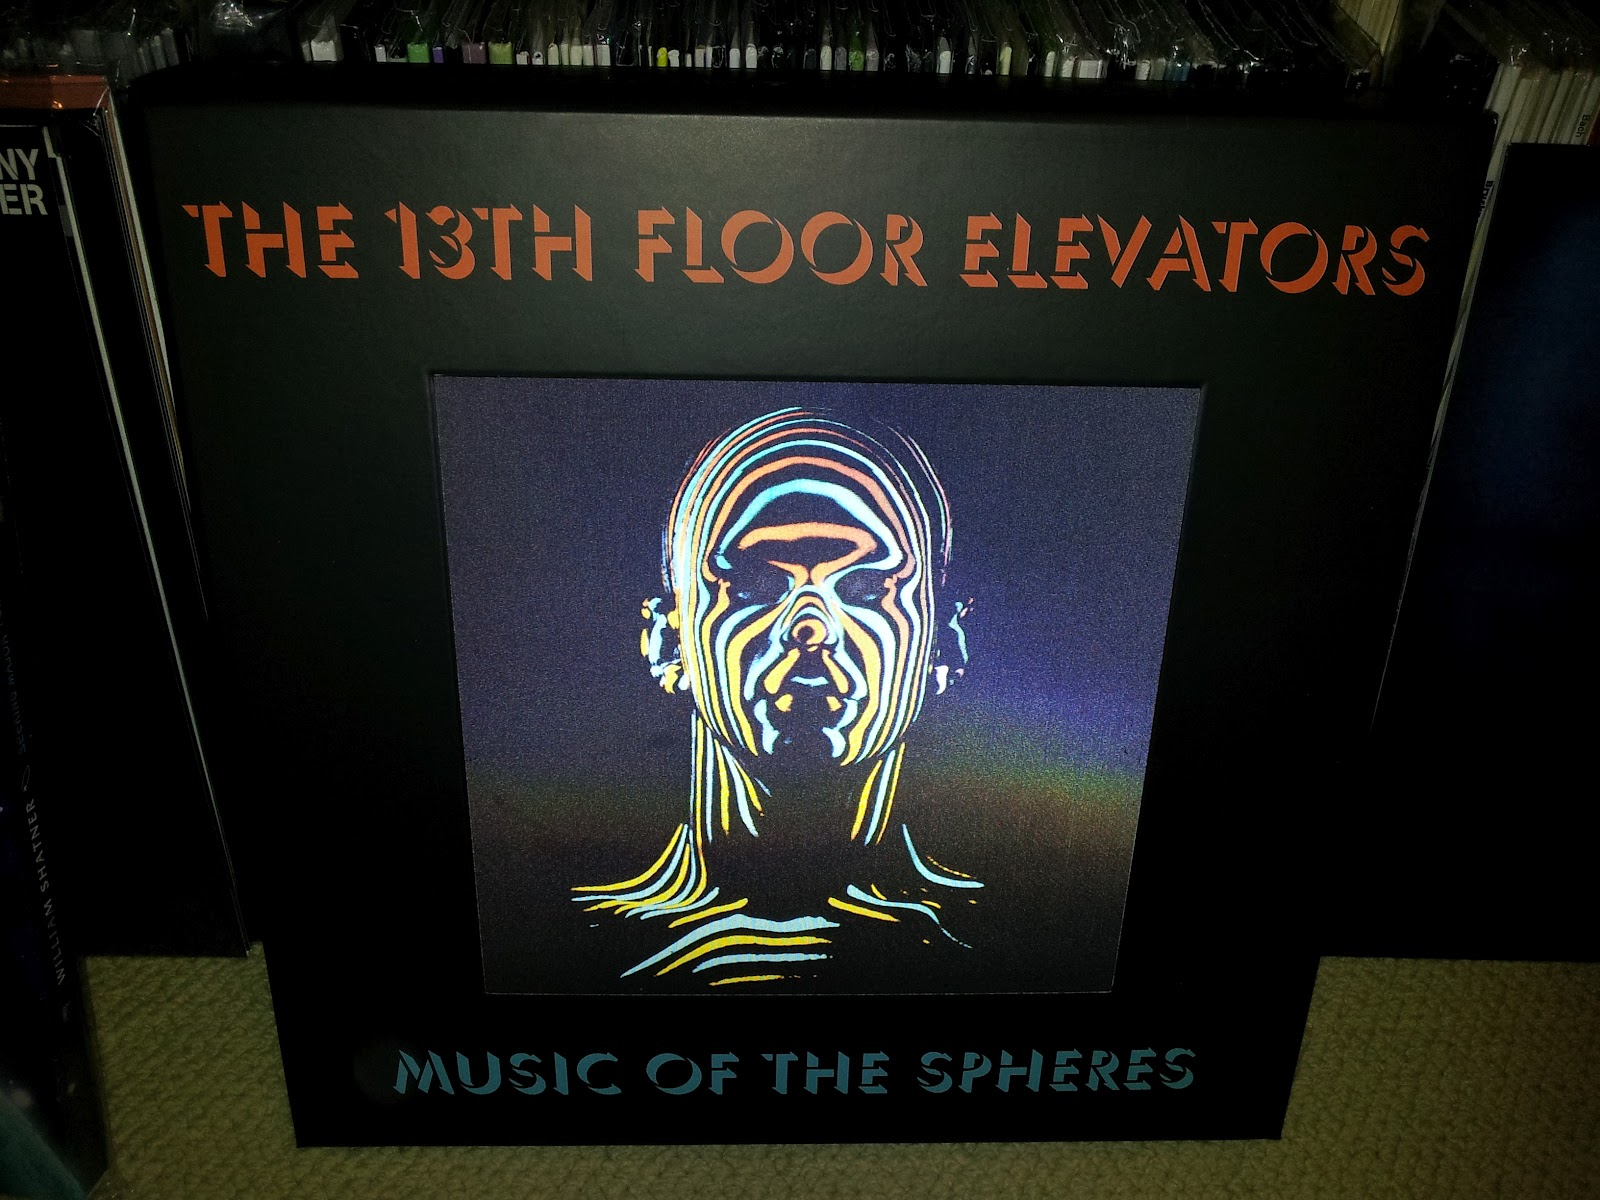 the 13th floor elevators music of the spheres vinyl box